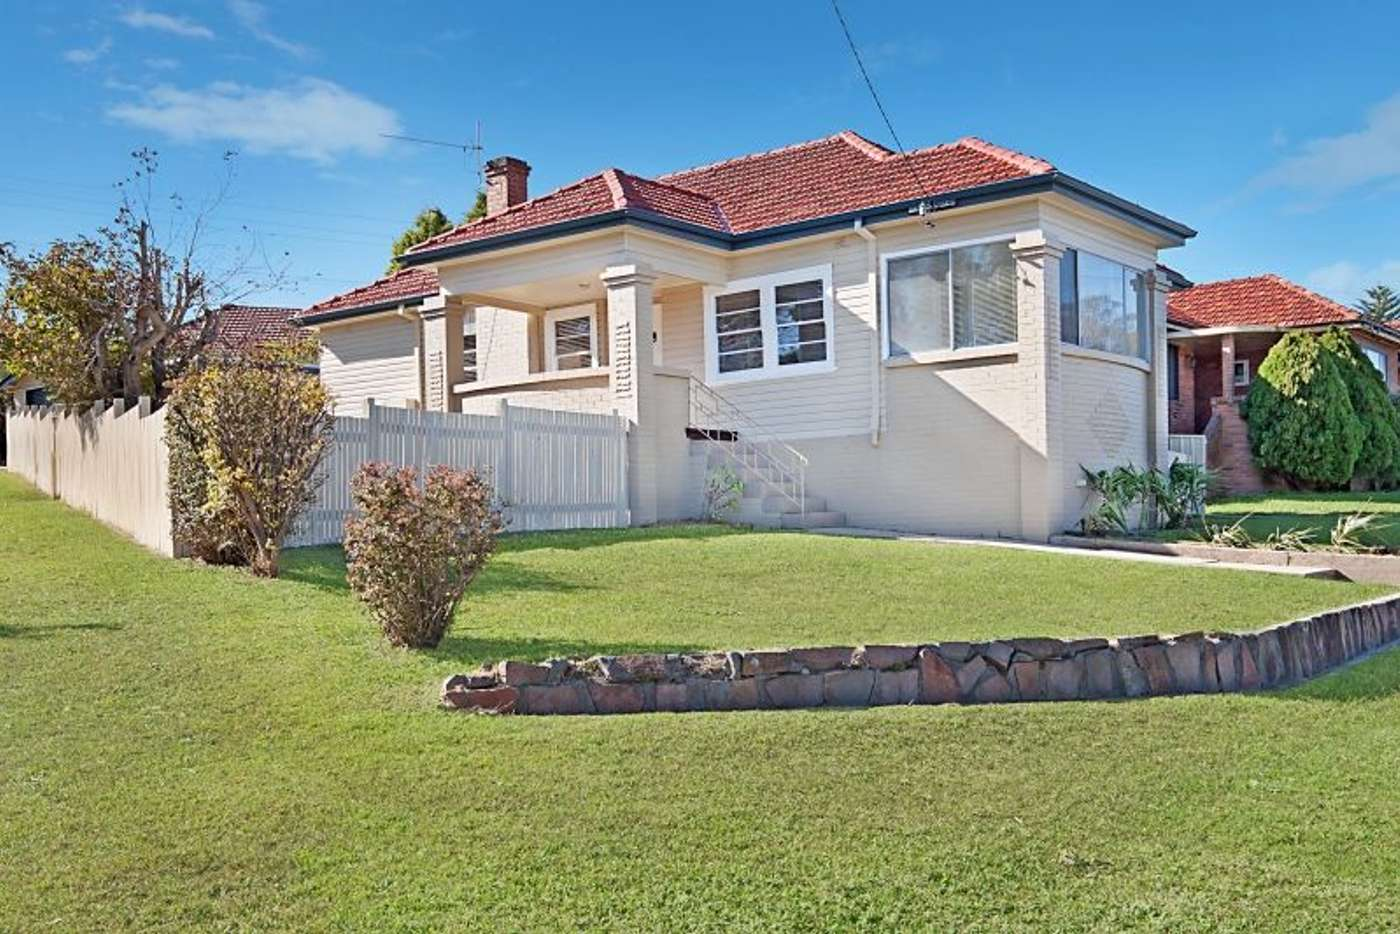 Main view of Homely house listing, 12 Traise Street, Waratah NSW 2298